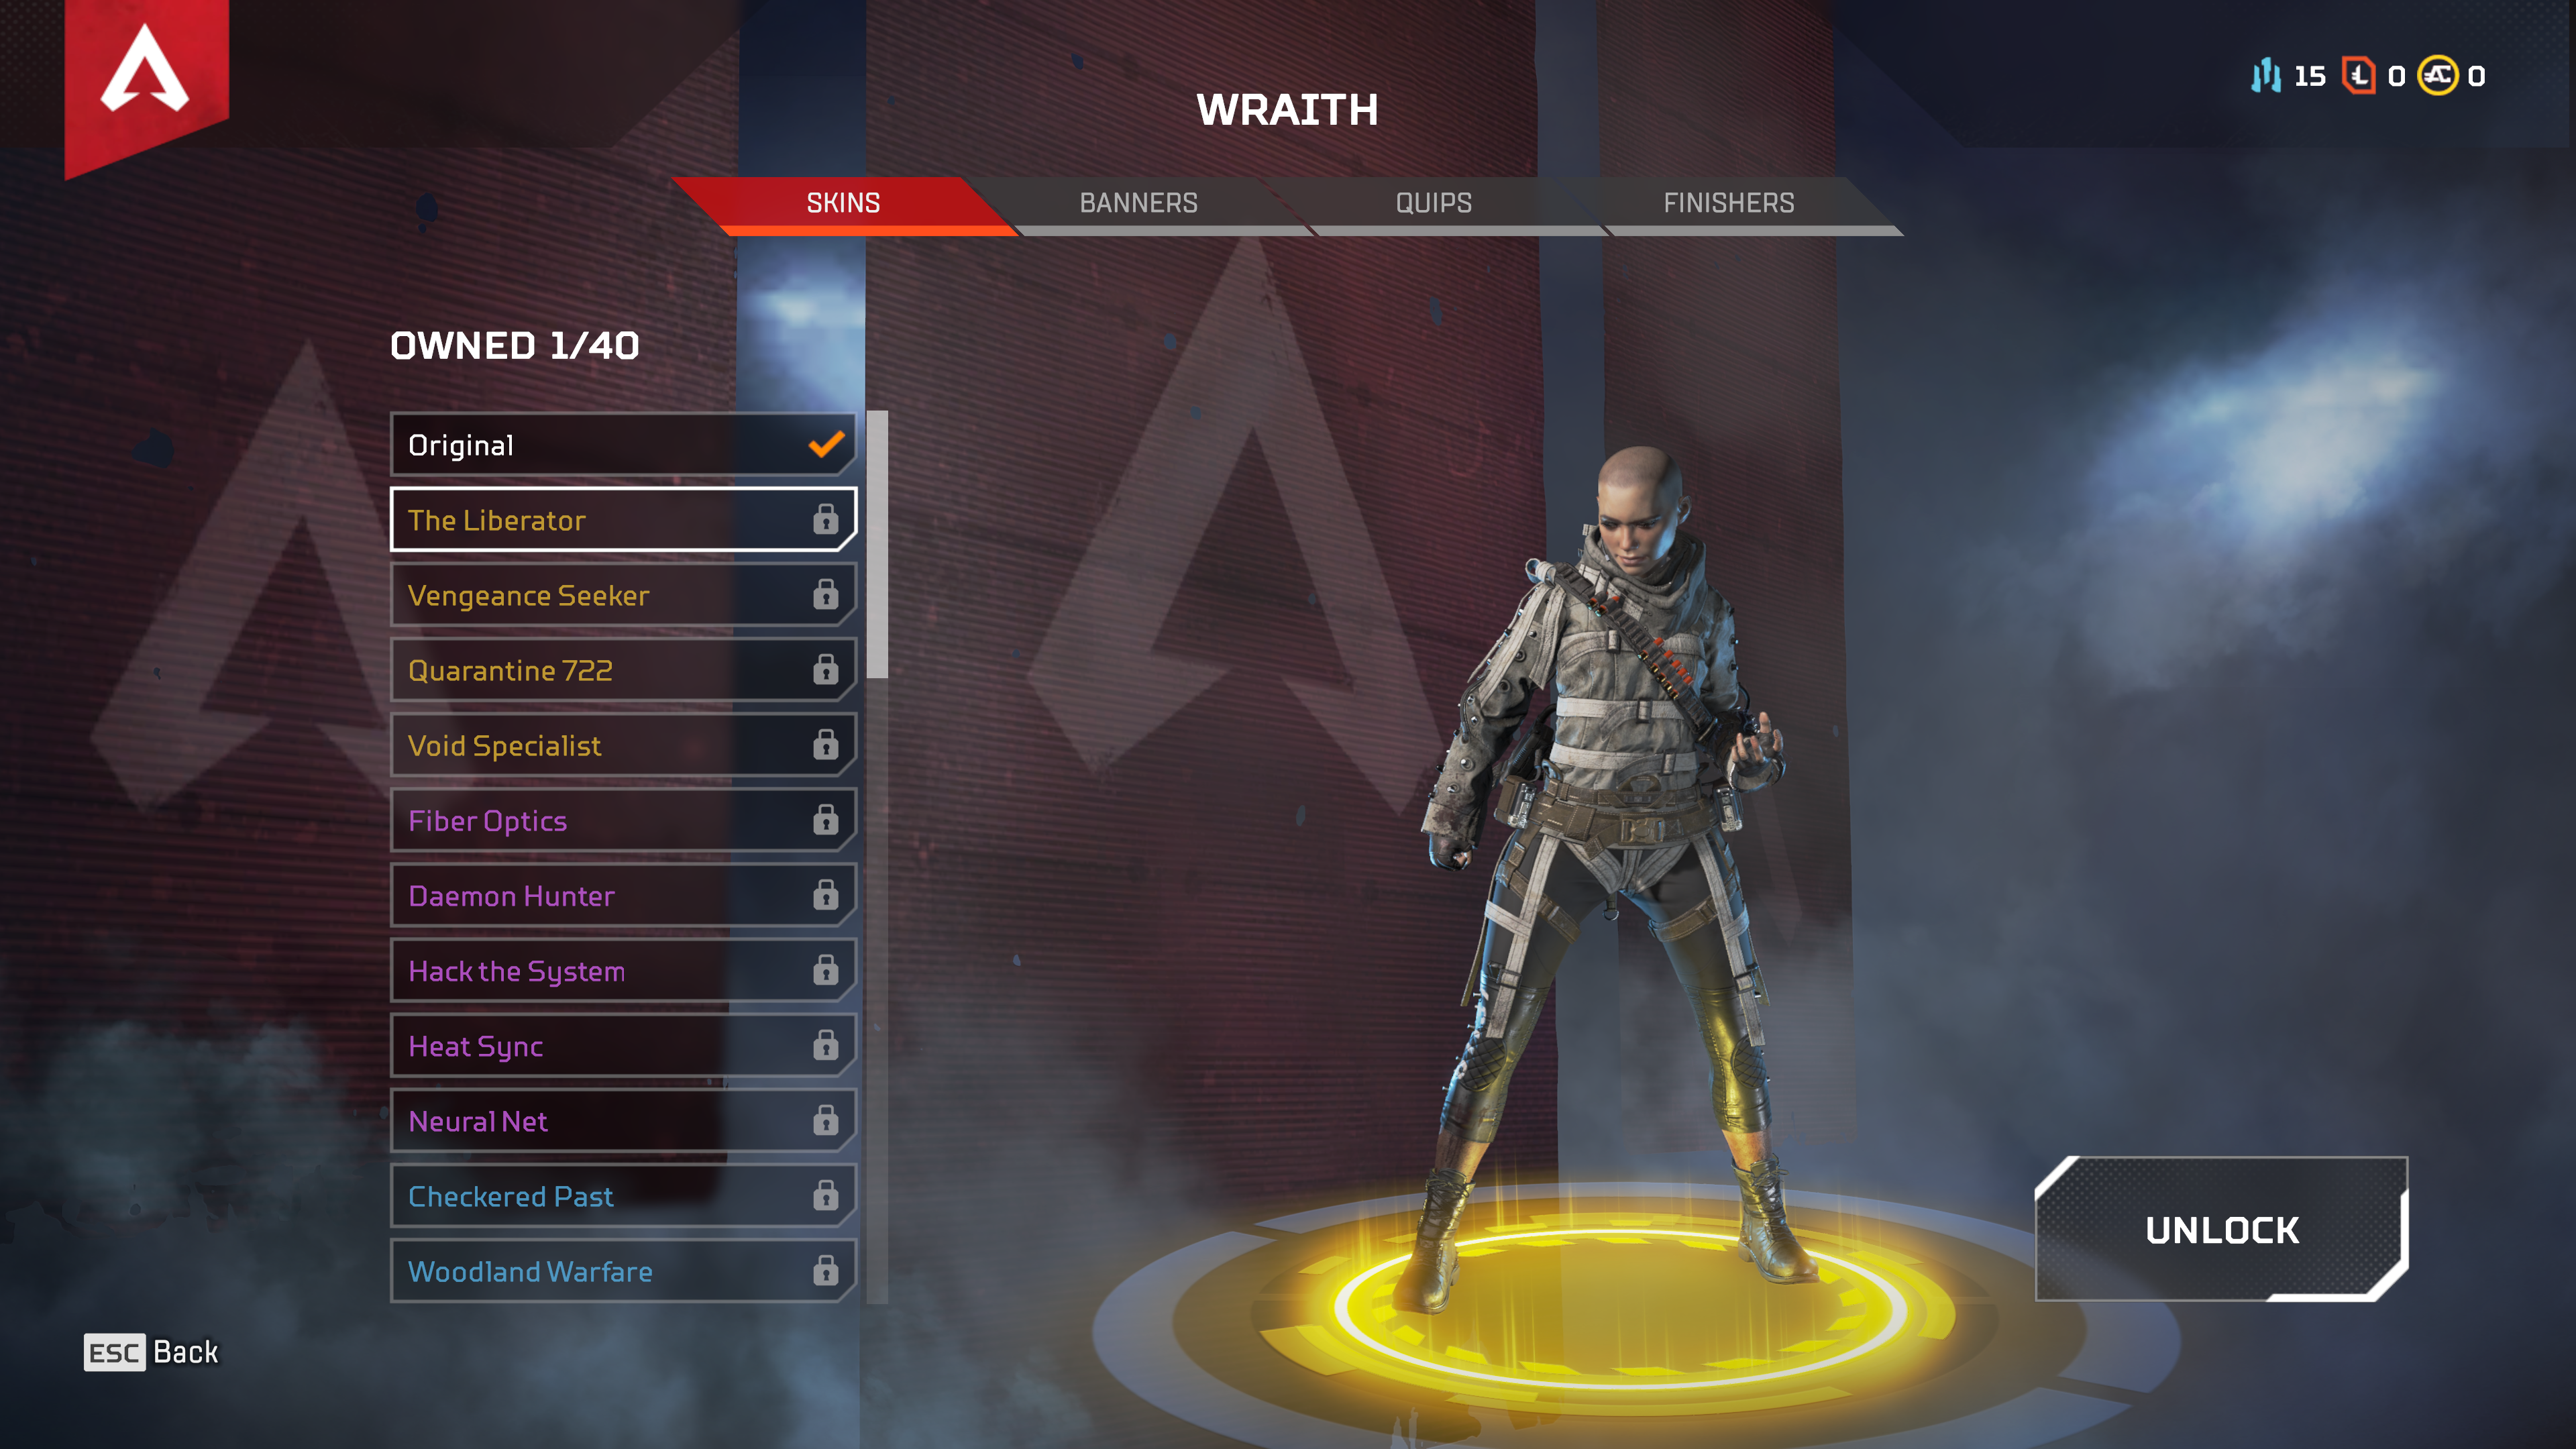 Apex Legends' cosmetic game is on point - we rate the best skins